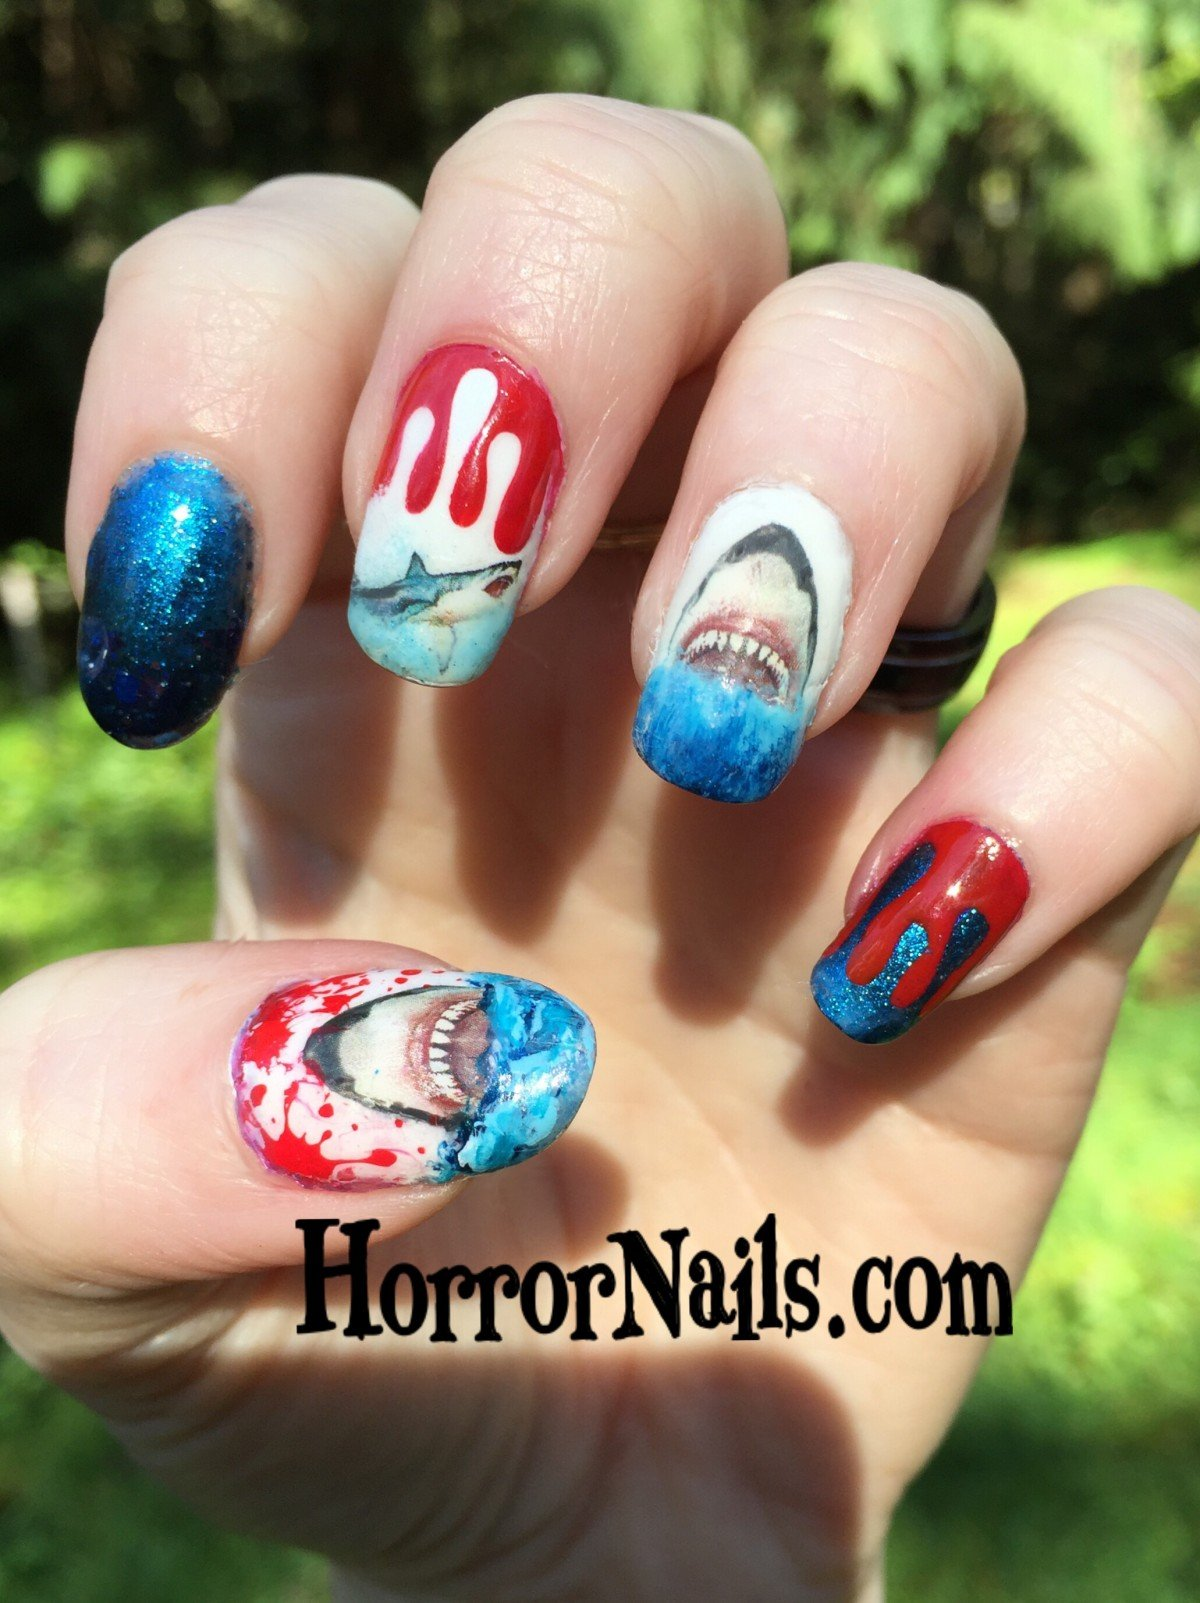 Jaws Nail Art - Horror Nails